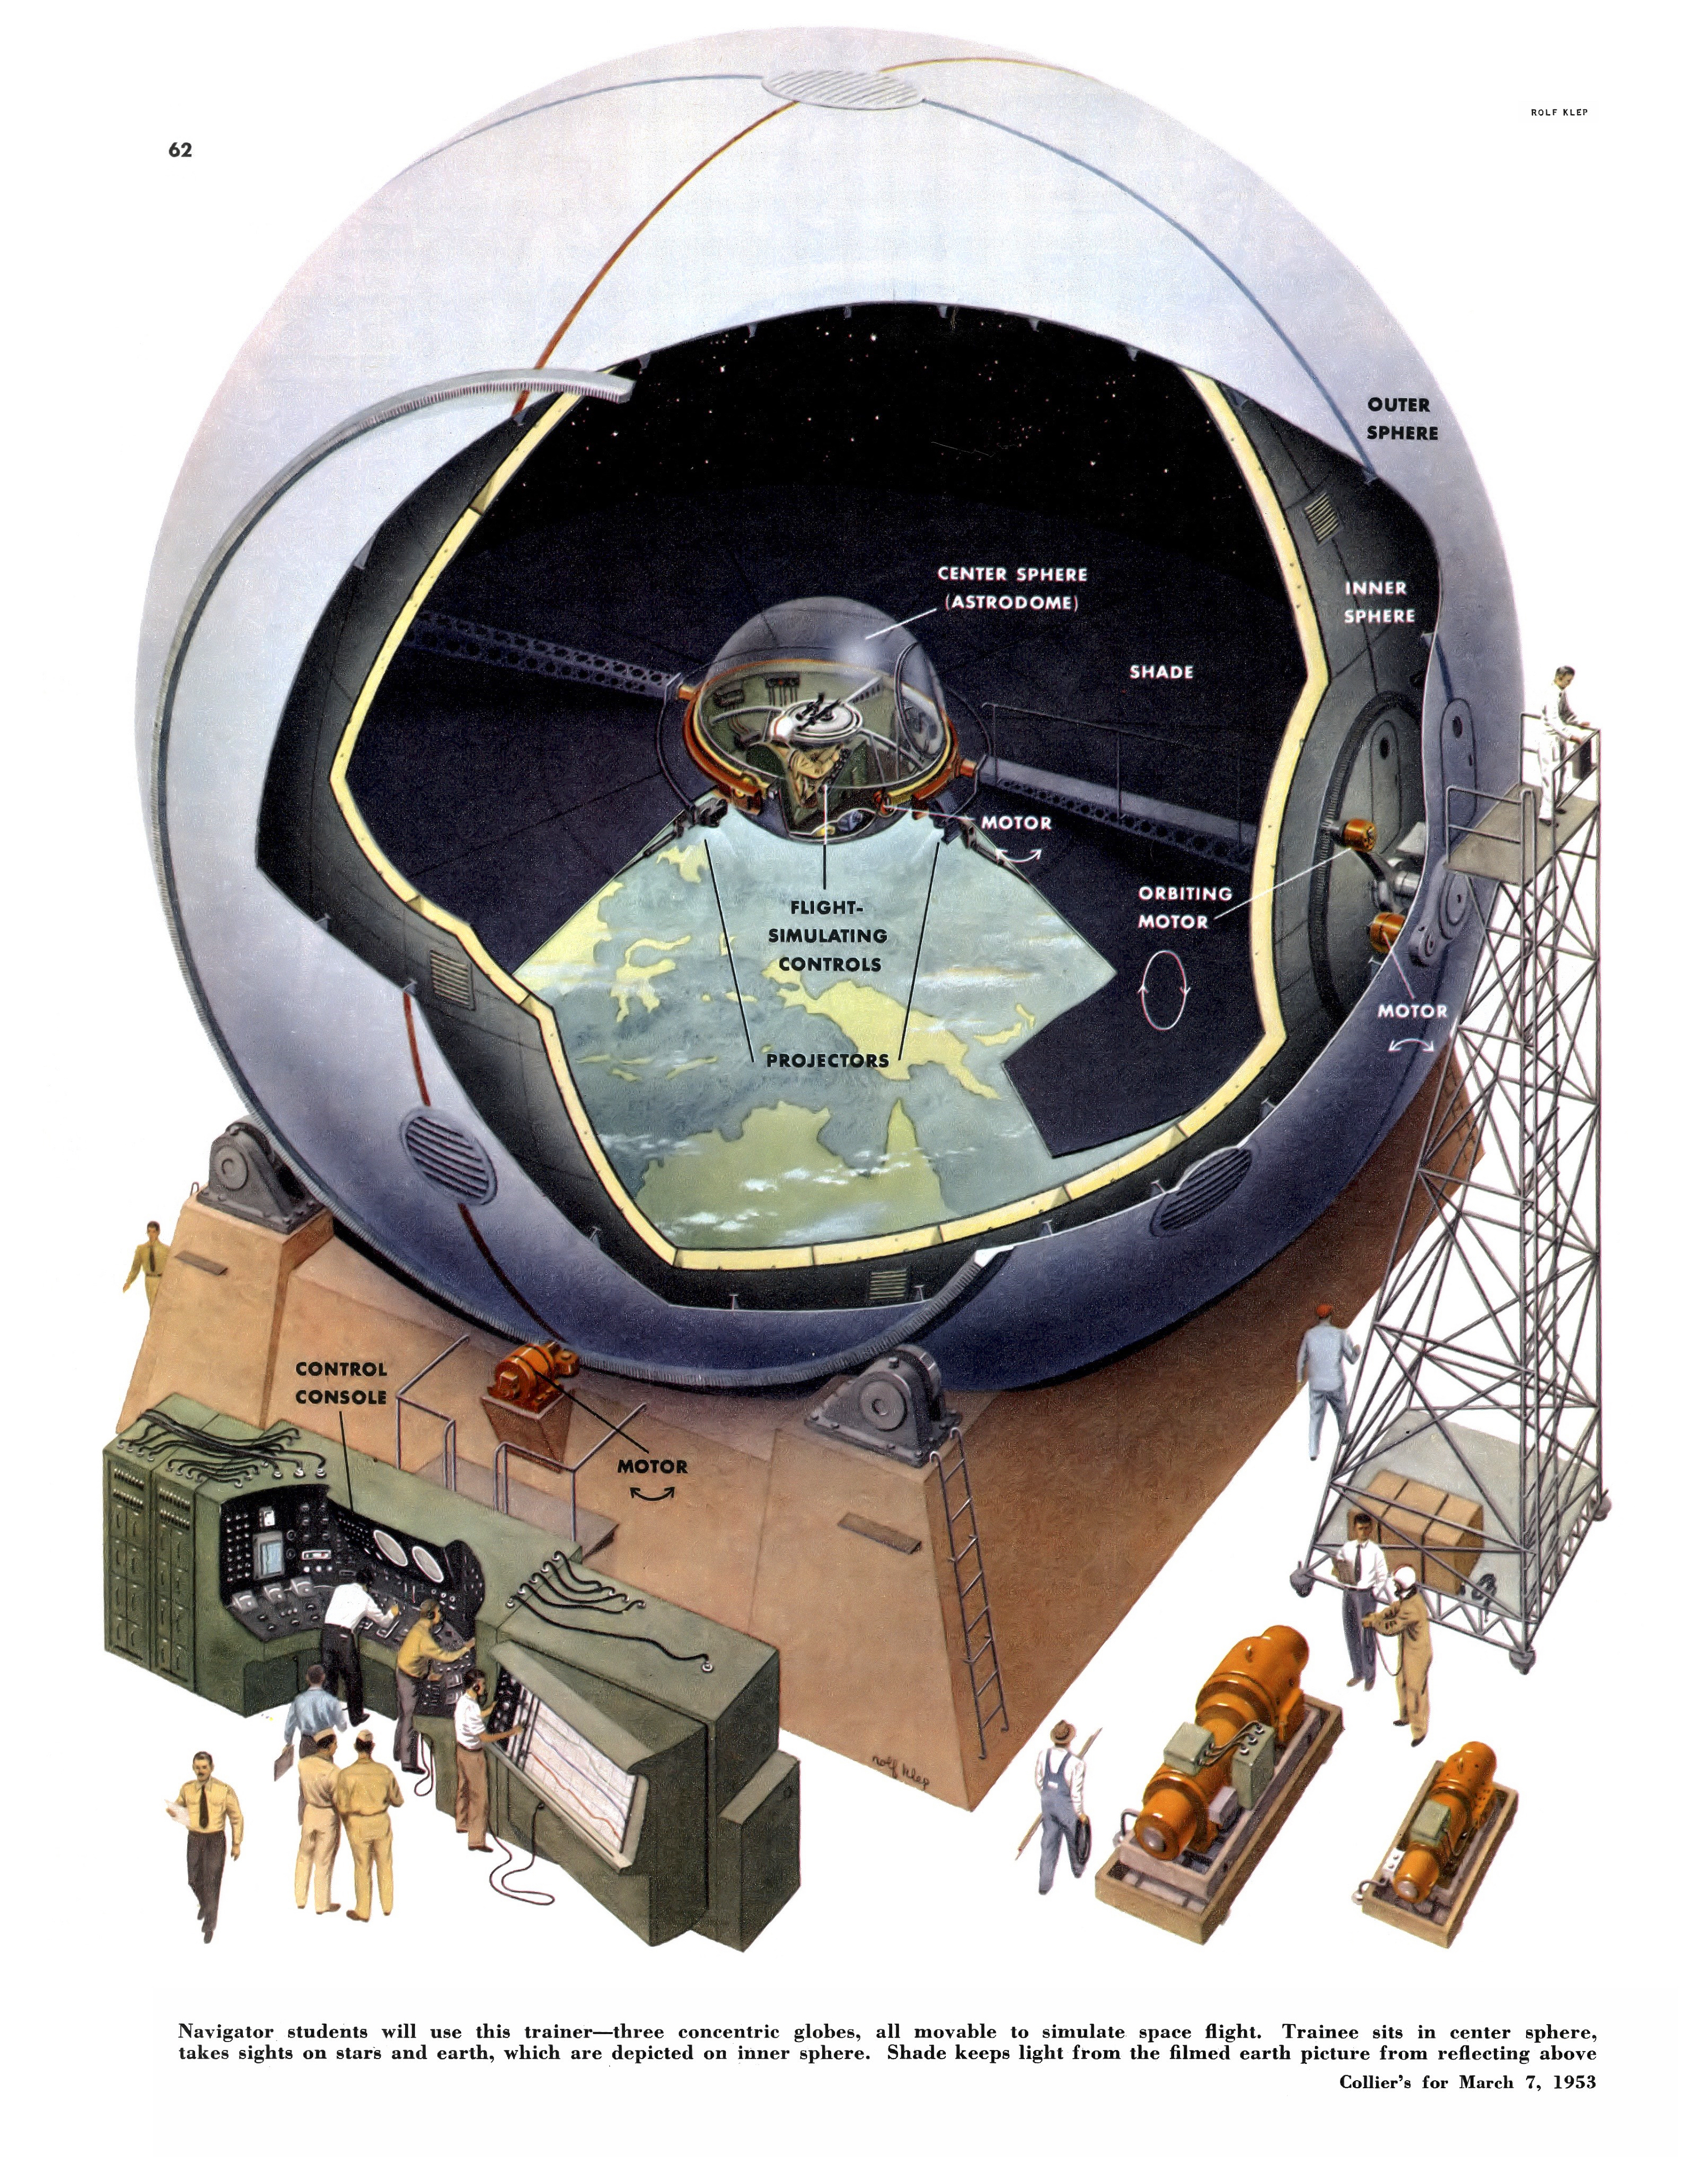 Collier 3.7.1953-p62-Training simulated space station.jpg